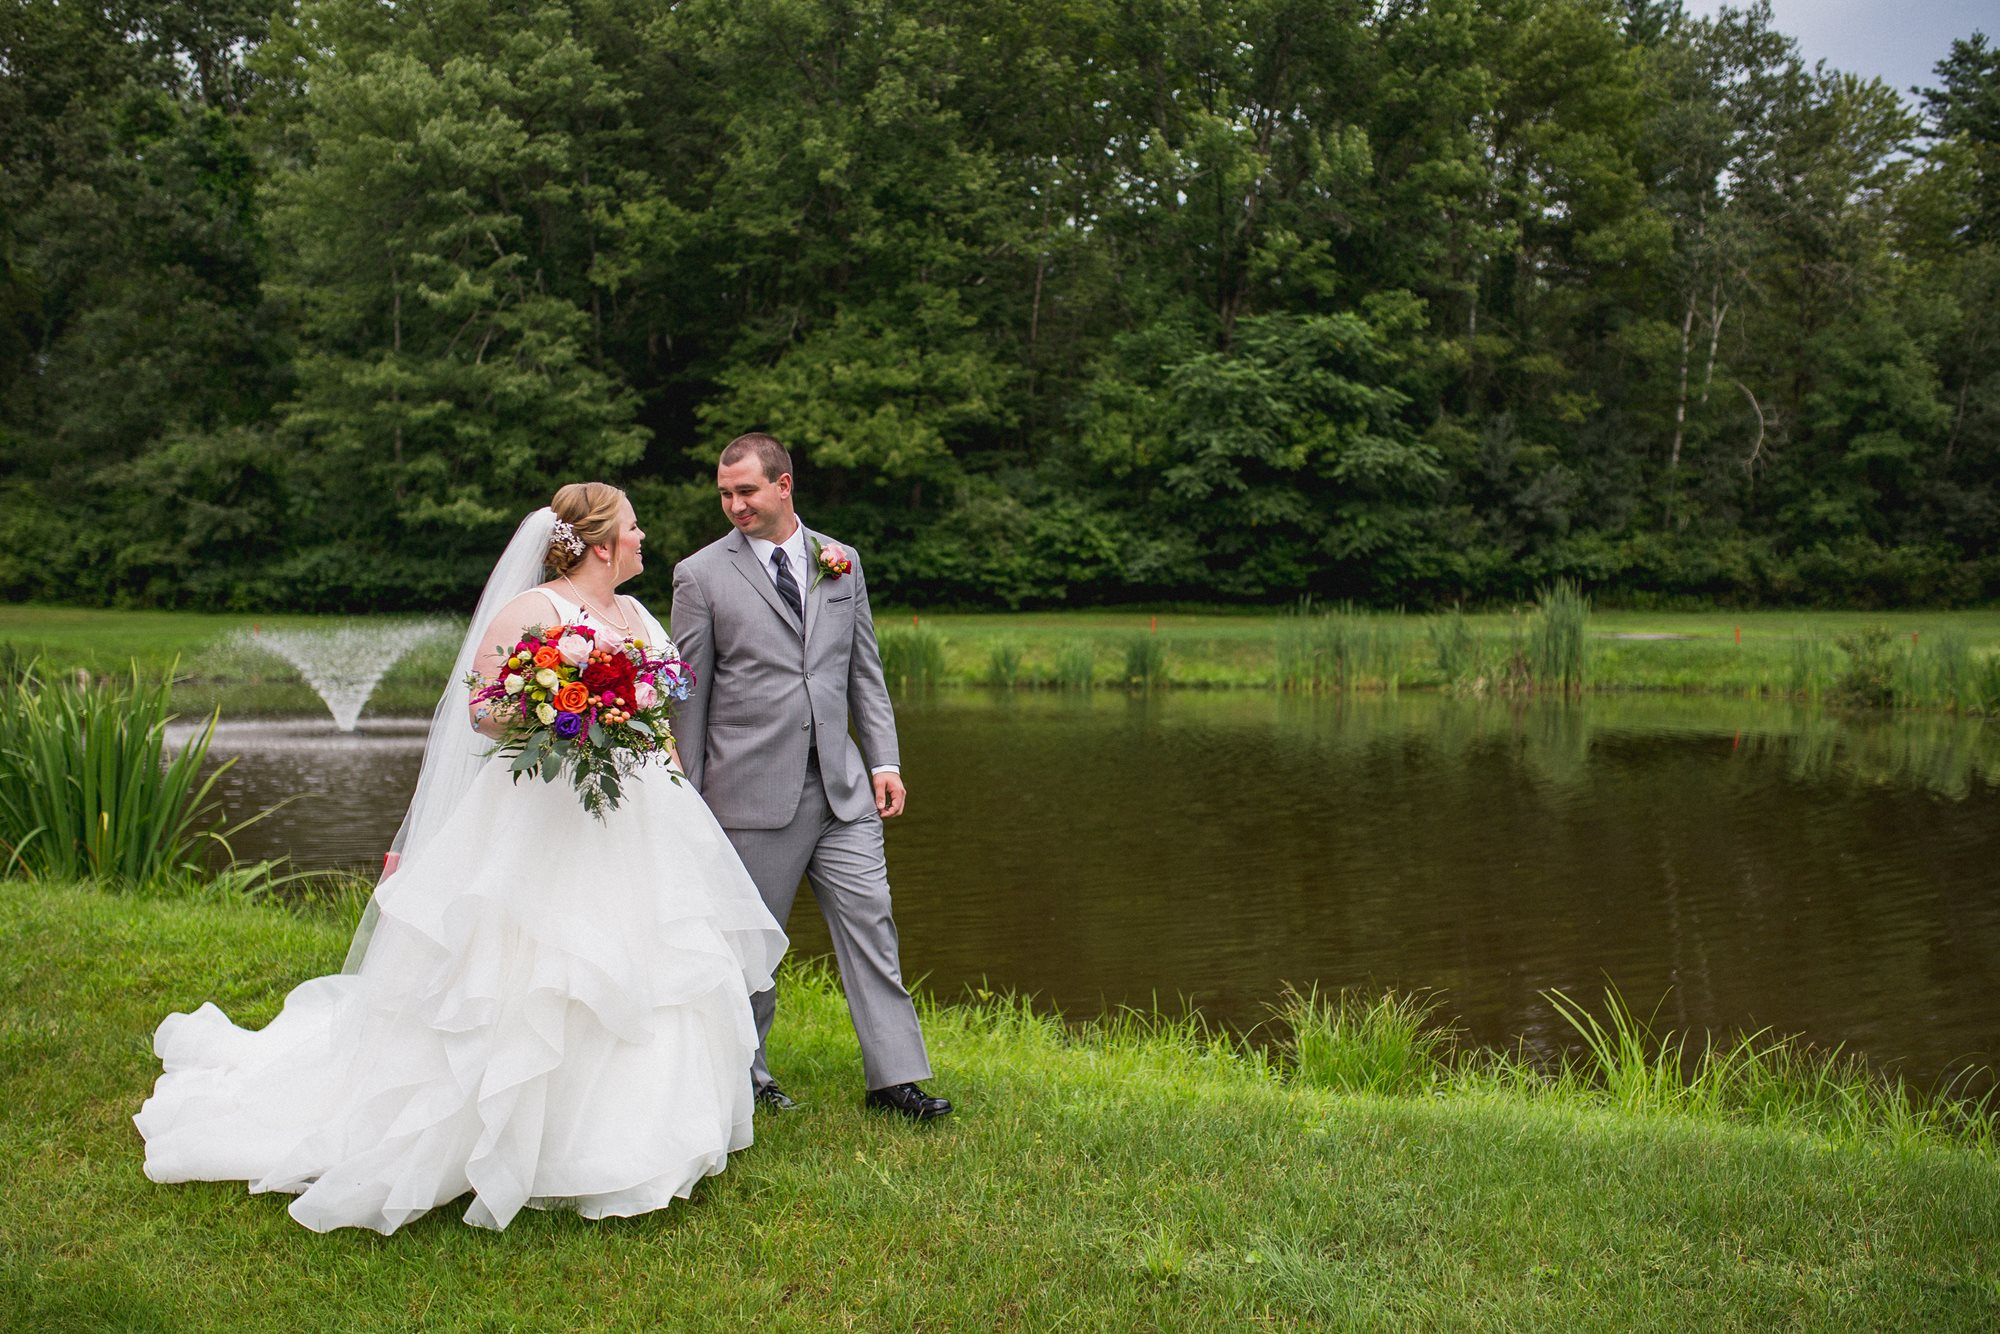 Marissa_and_Tyler_s_Wedding-6_Bride_and_Groom-0029